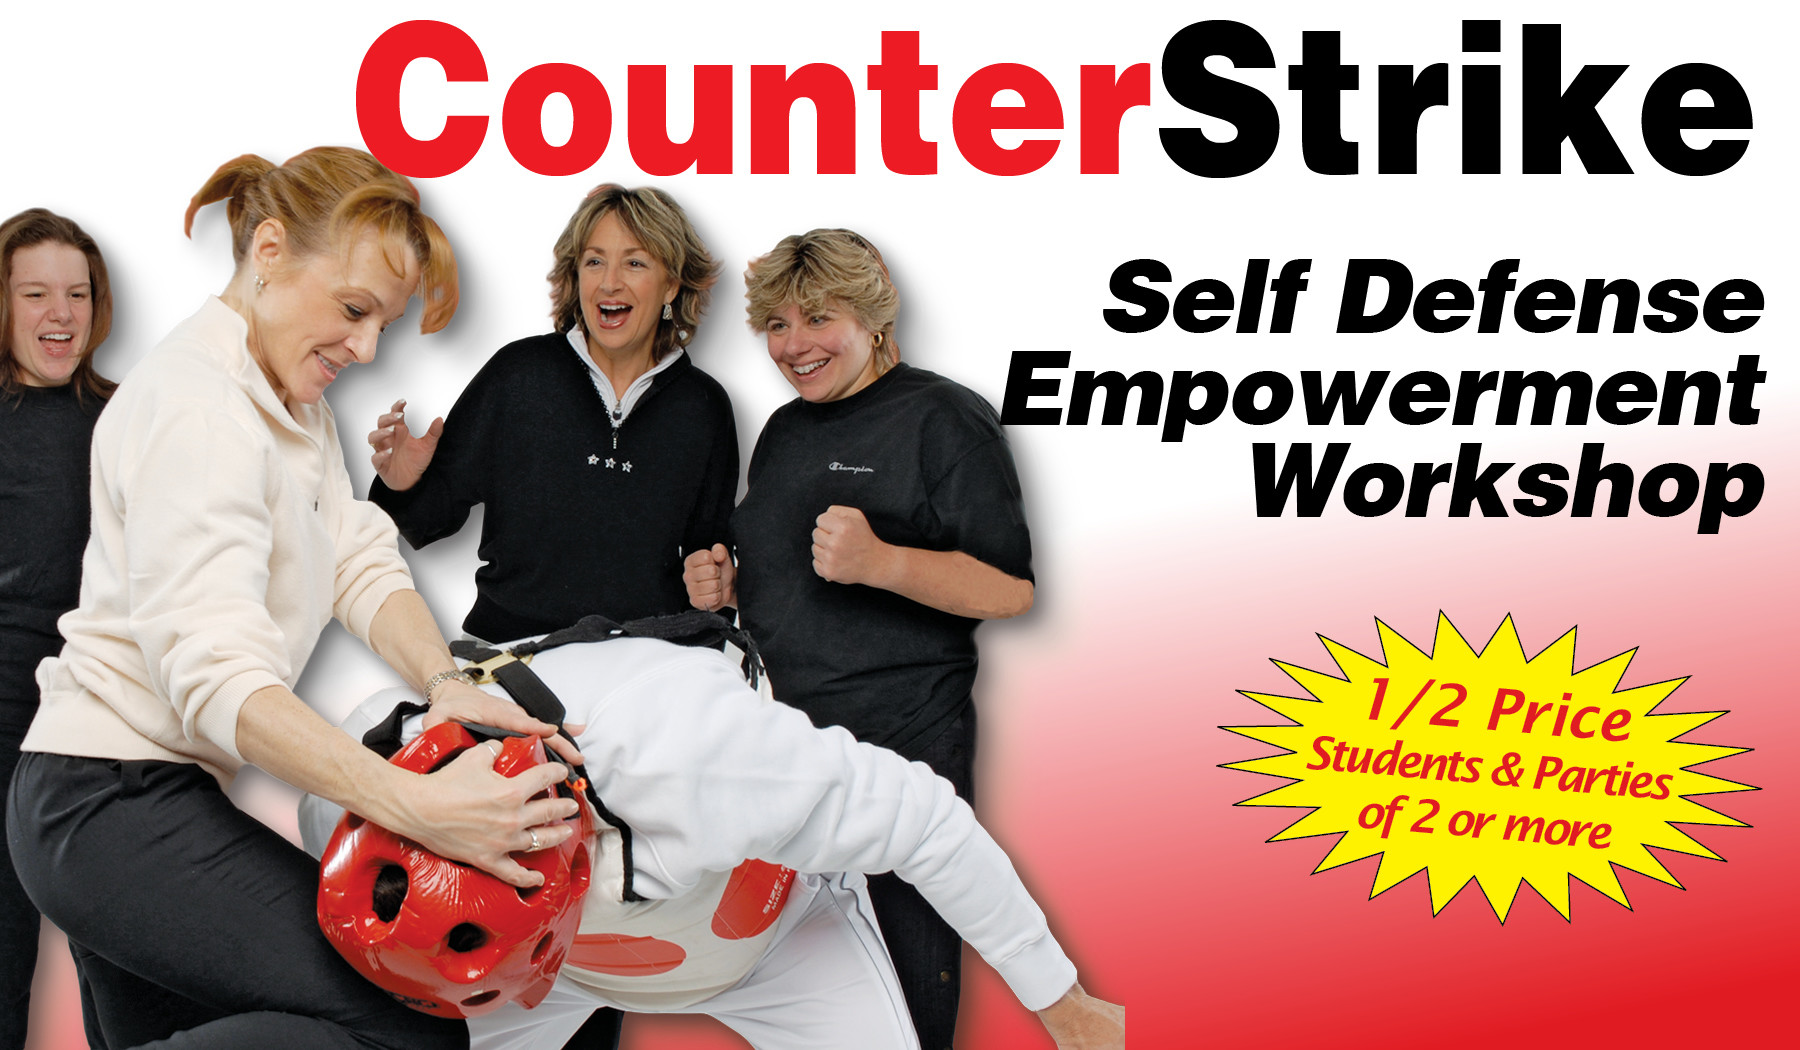 http://www.workoutplace.org/womens-self-defense-rockland-county-ny/